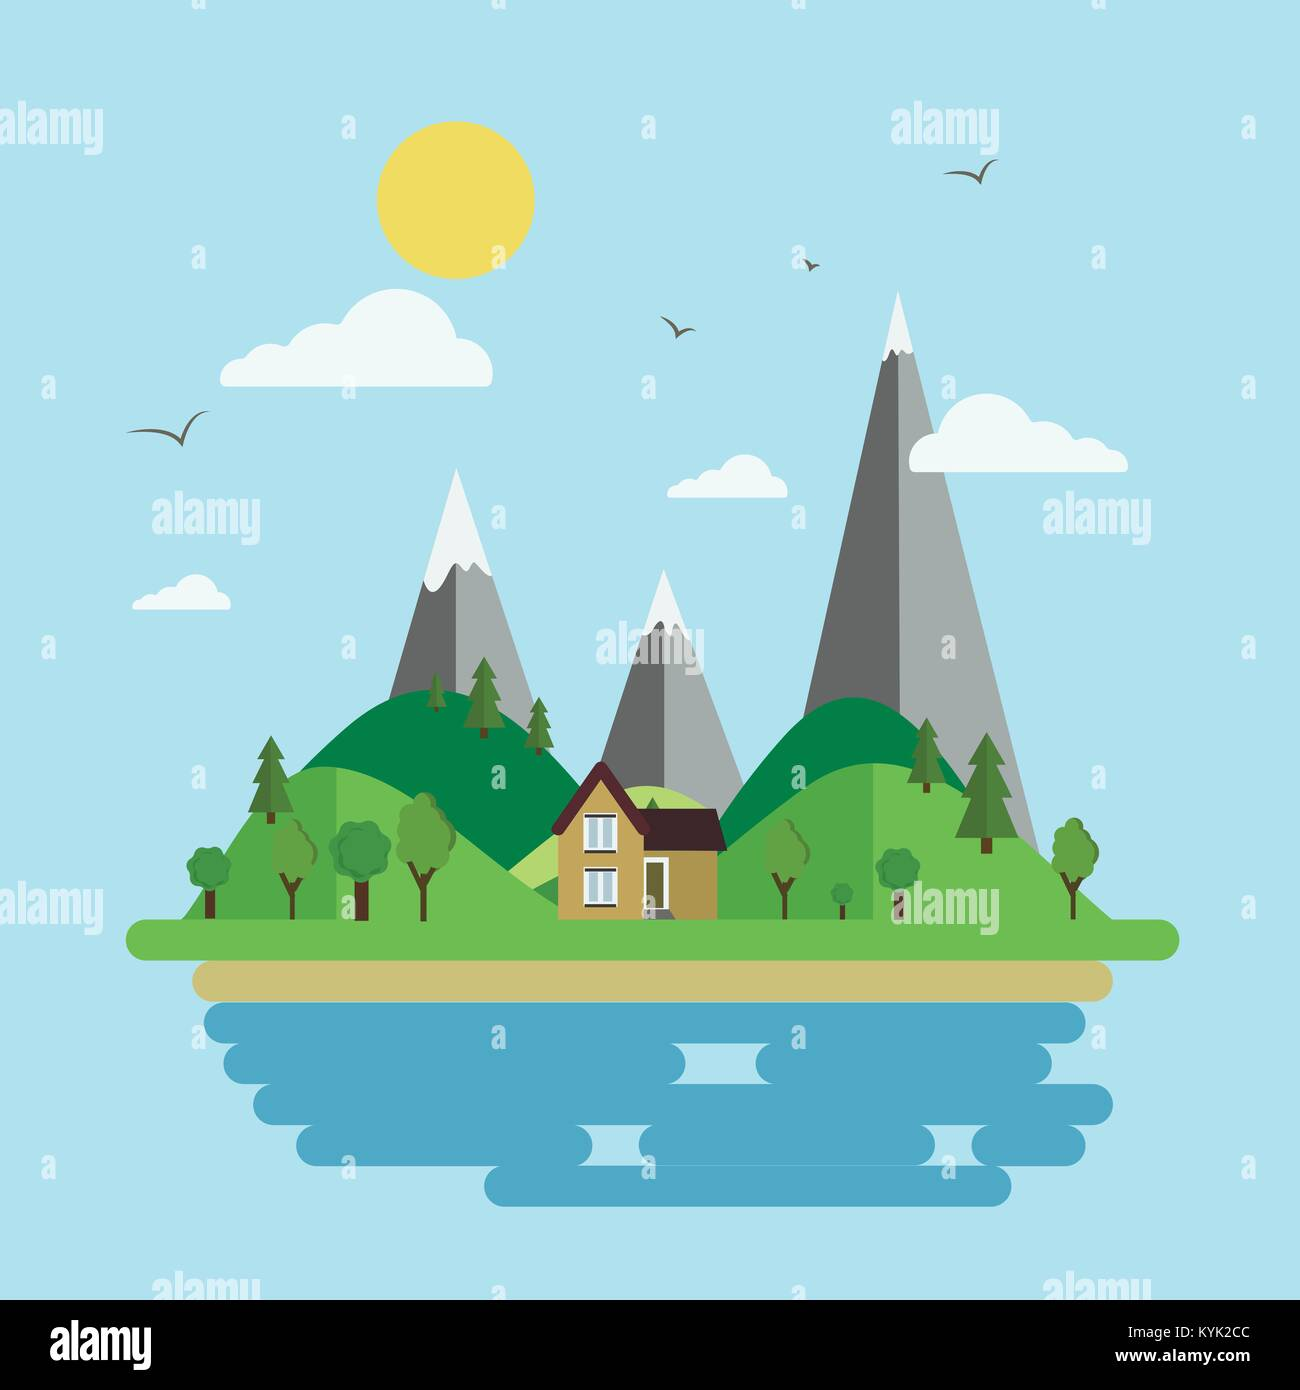 Vector illustration of island and seascape. - Stock Vector